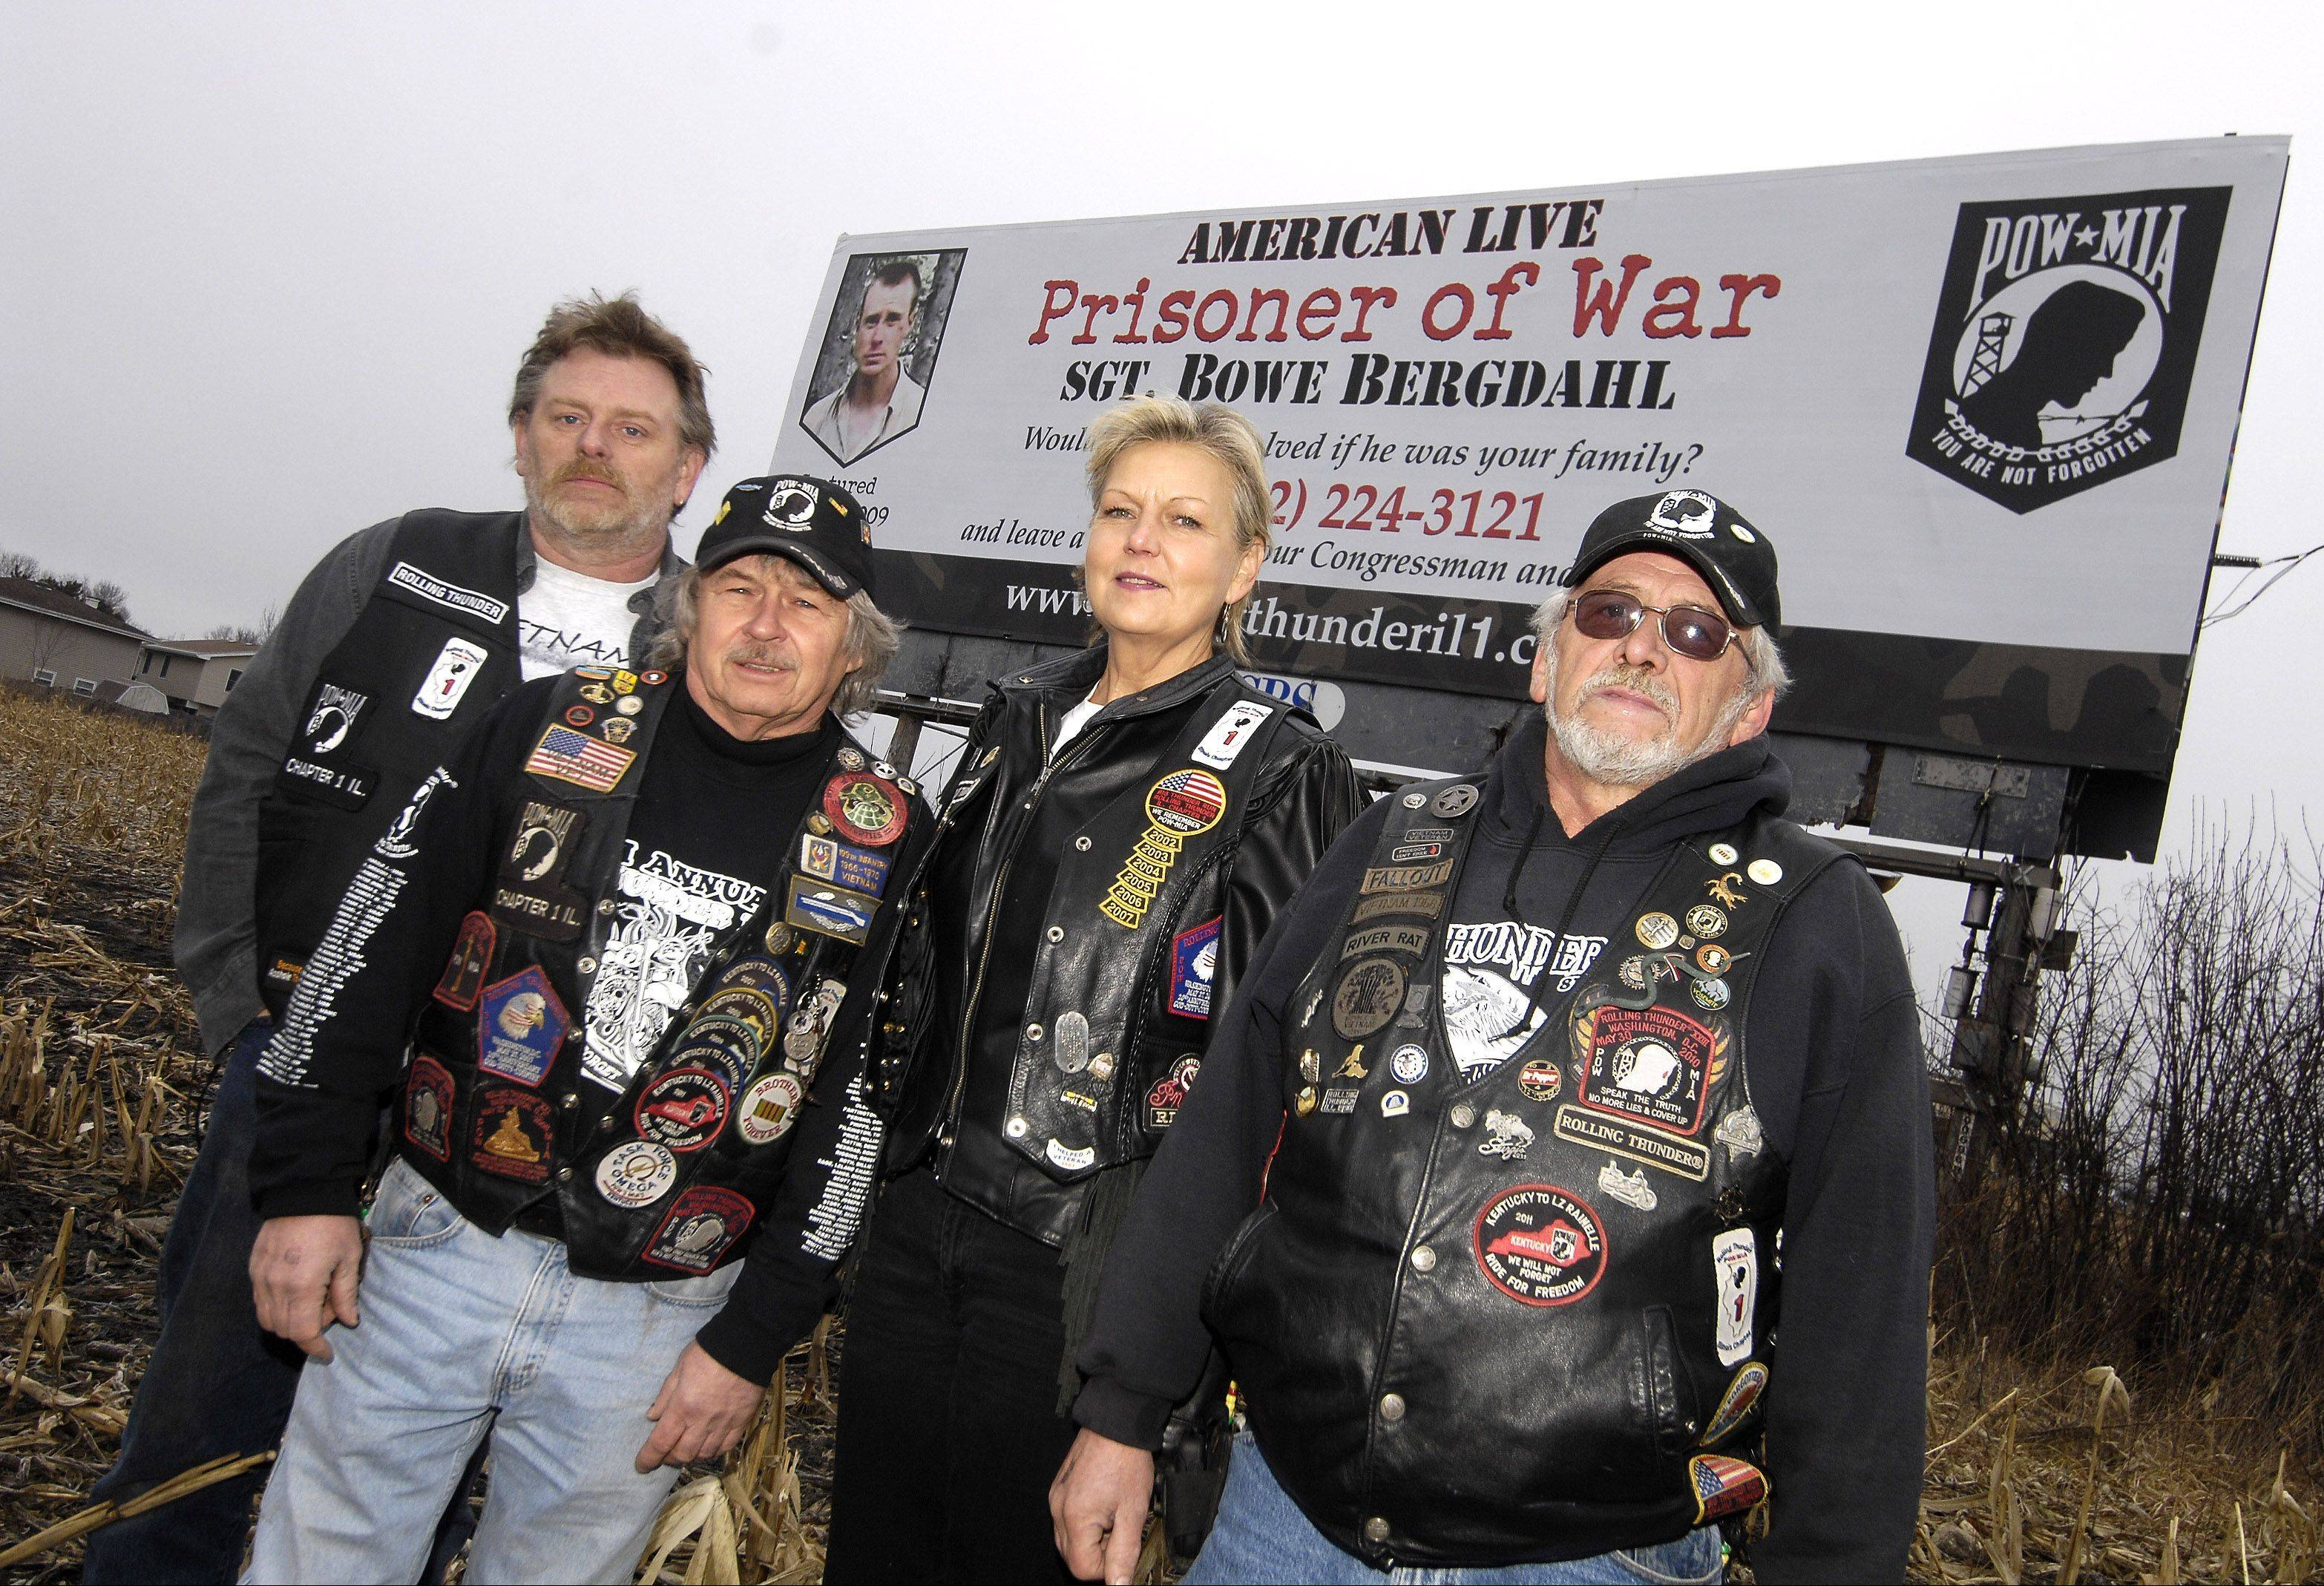 Members of Rolling Thunder Chapter 1 veterans group -- including, from left, Jim Slenk of Batavia, Bill Sharpness of Kingston, Ronda Mahar of Wheaton and Bill Atkinson of Carol Stream -- rented billboards, including one in Hanover Park, to call attention to the plight of the lone American POW, Sgt. Bowe Bergdahl of Idaho.